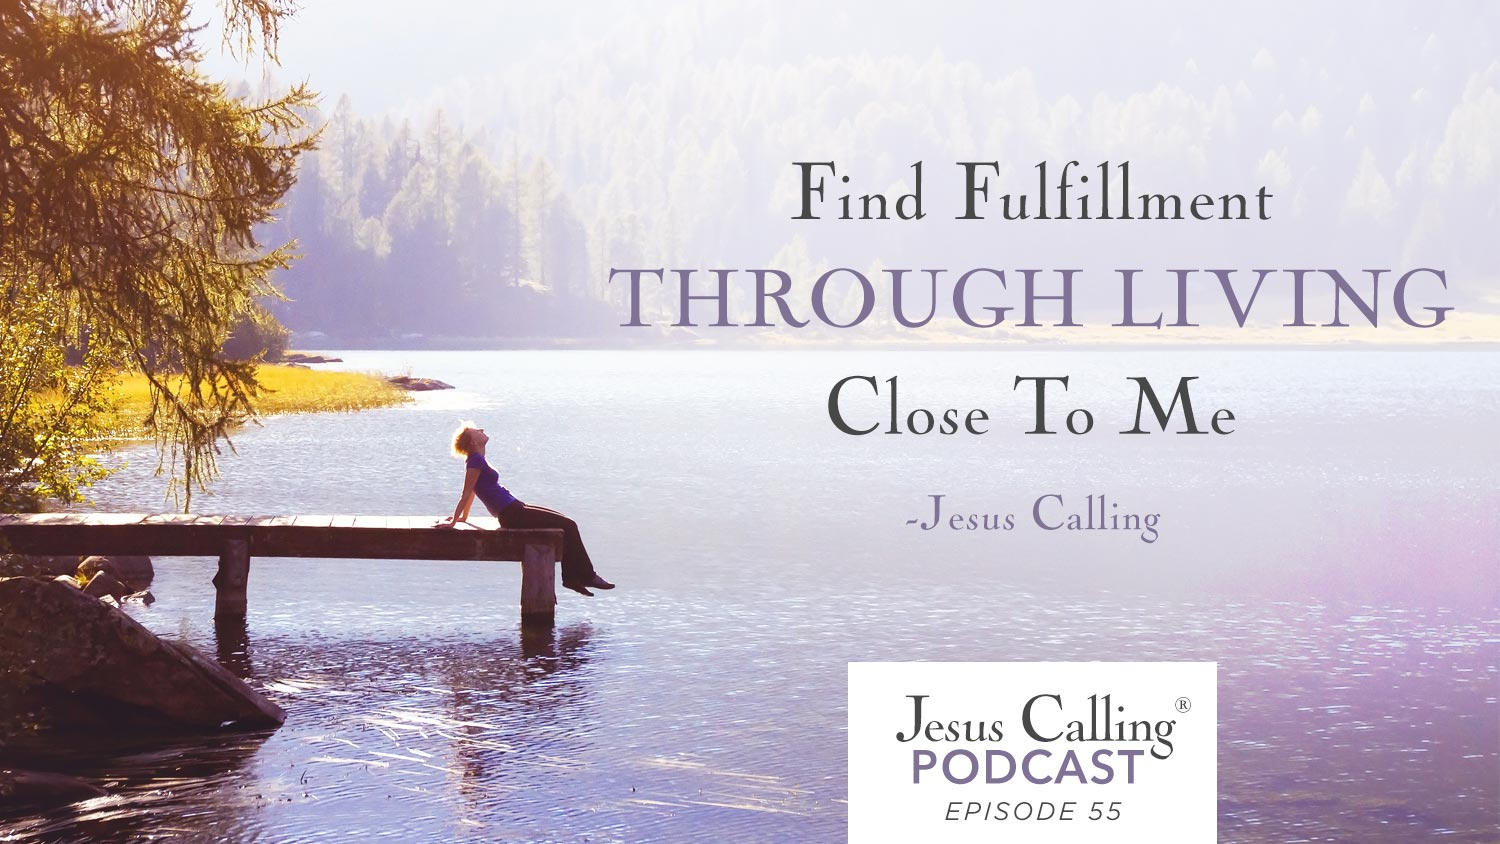 Find Fulfillment Through Living Close To Me - Jesus Calling Episode 55